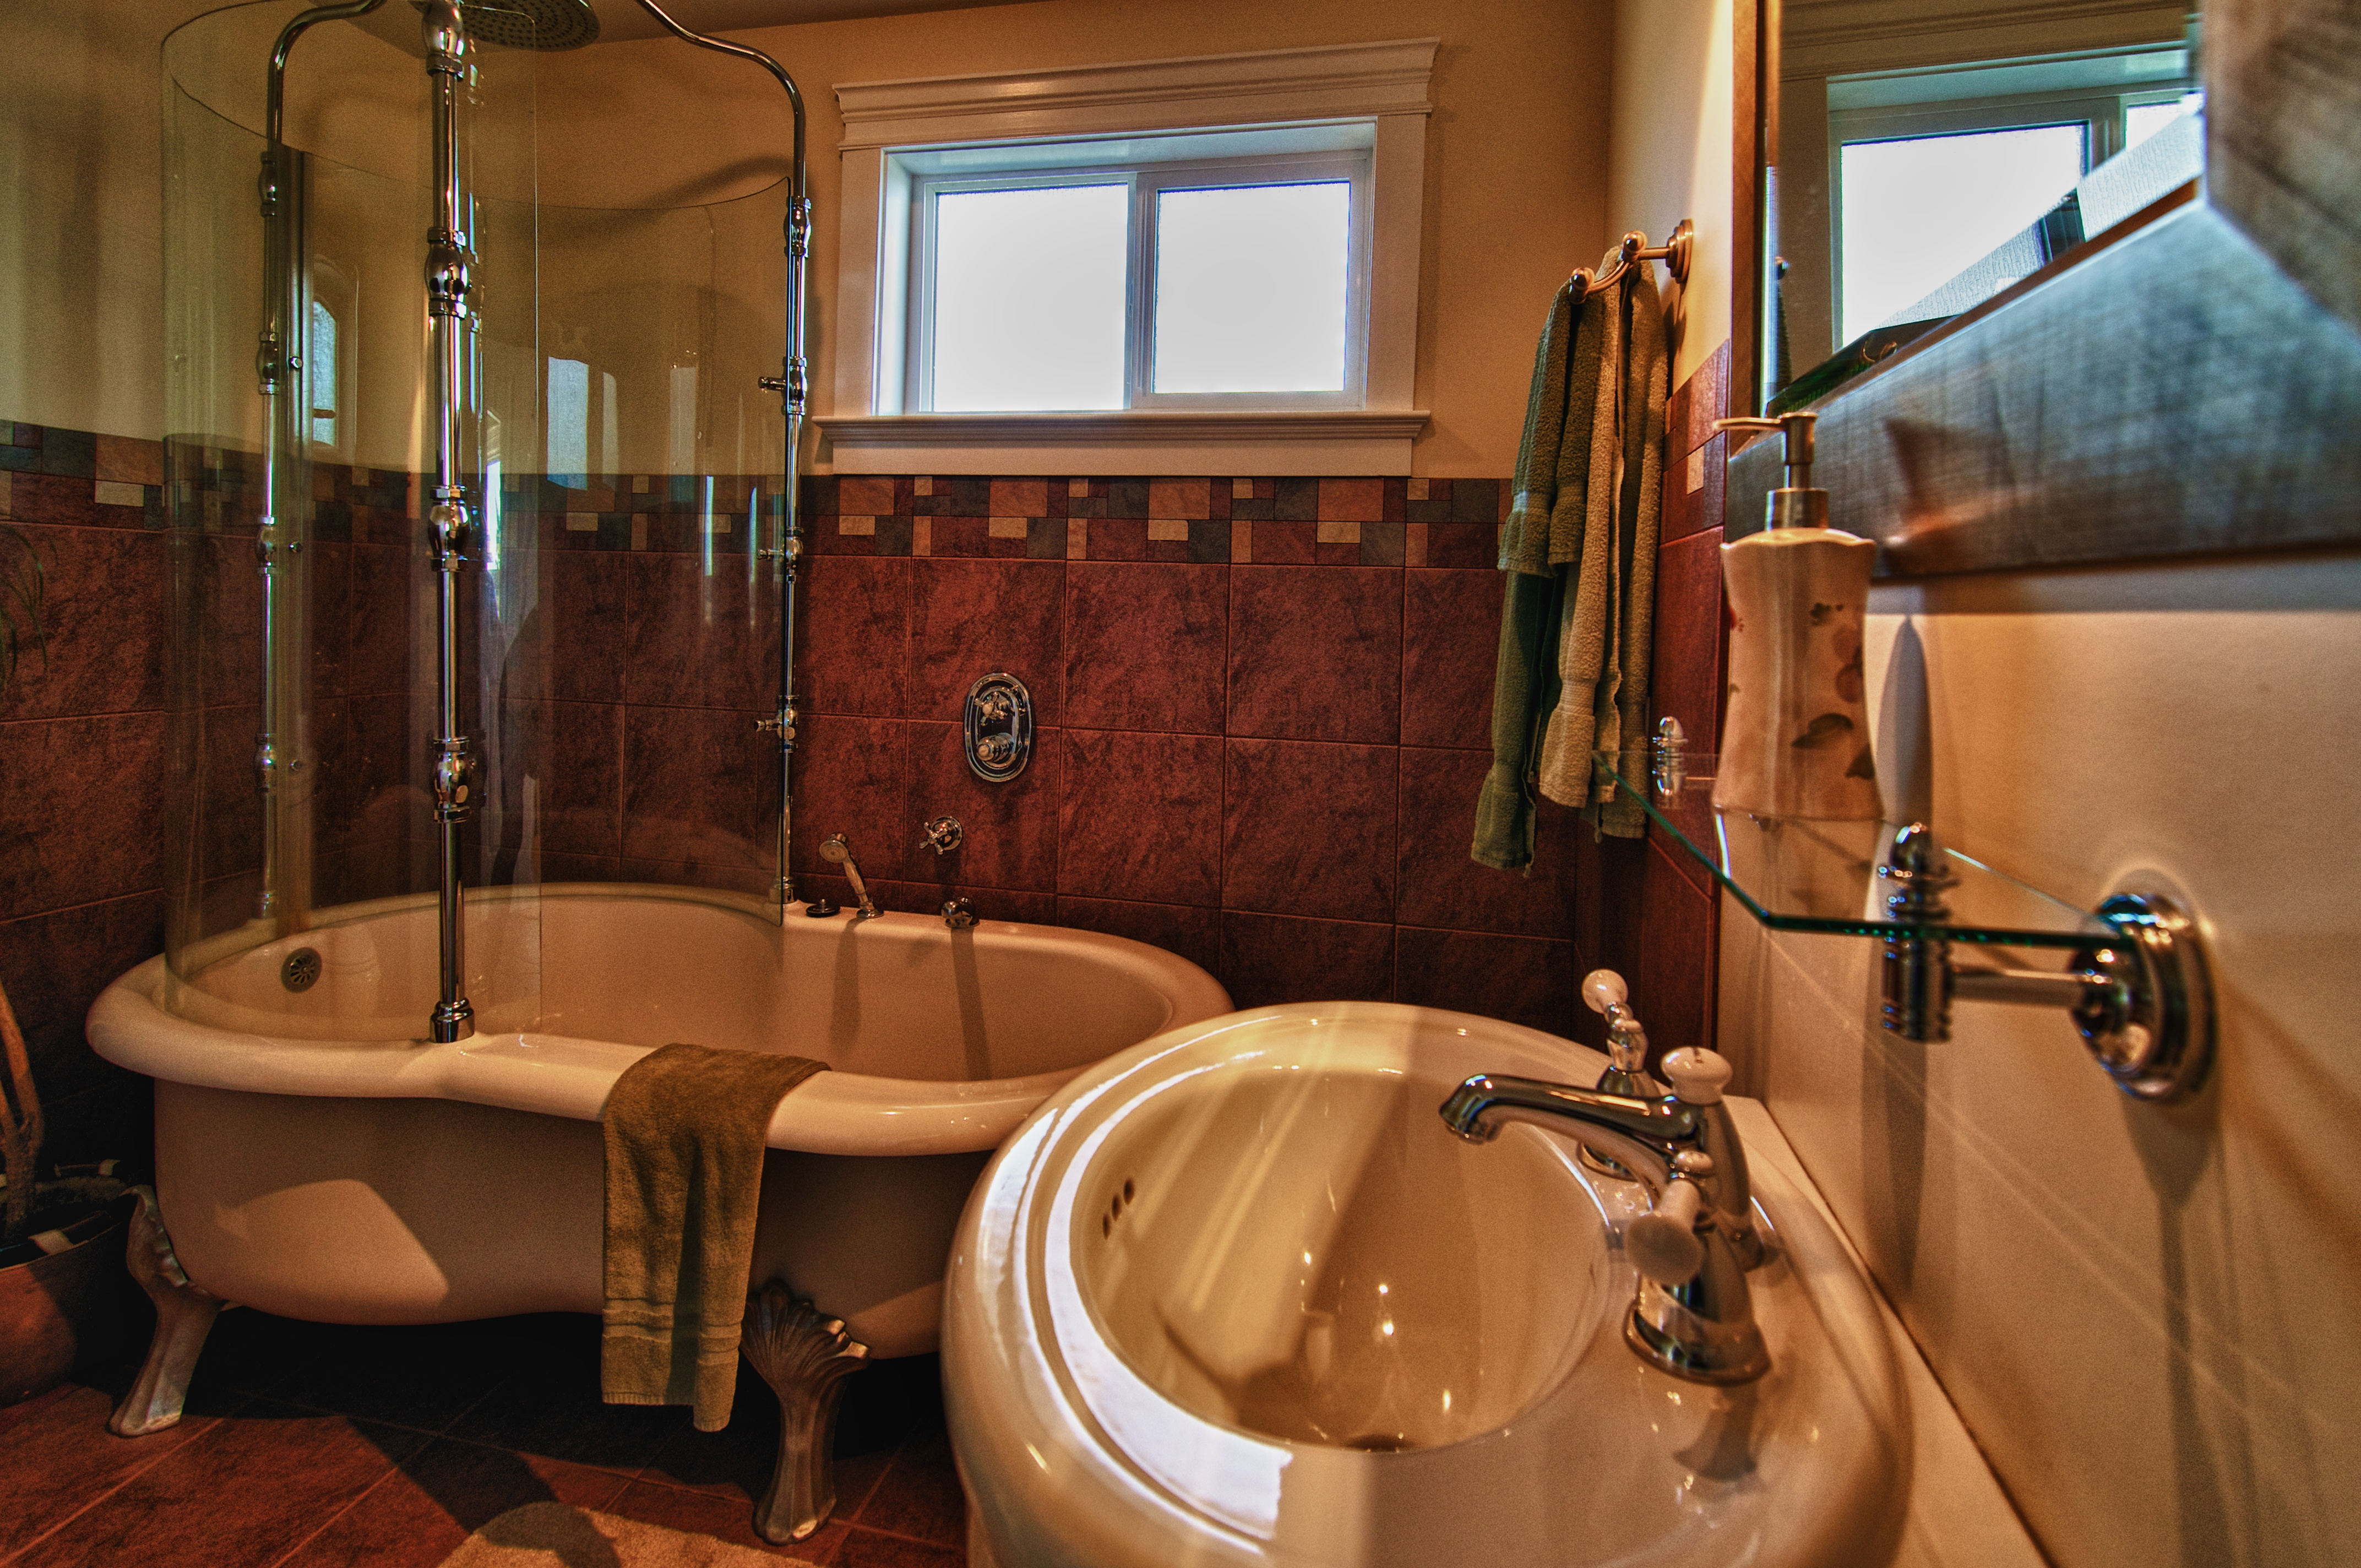 Honeymoon suite soaker tub and rain shower at Birds of a Feather B&B